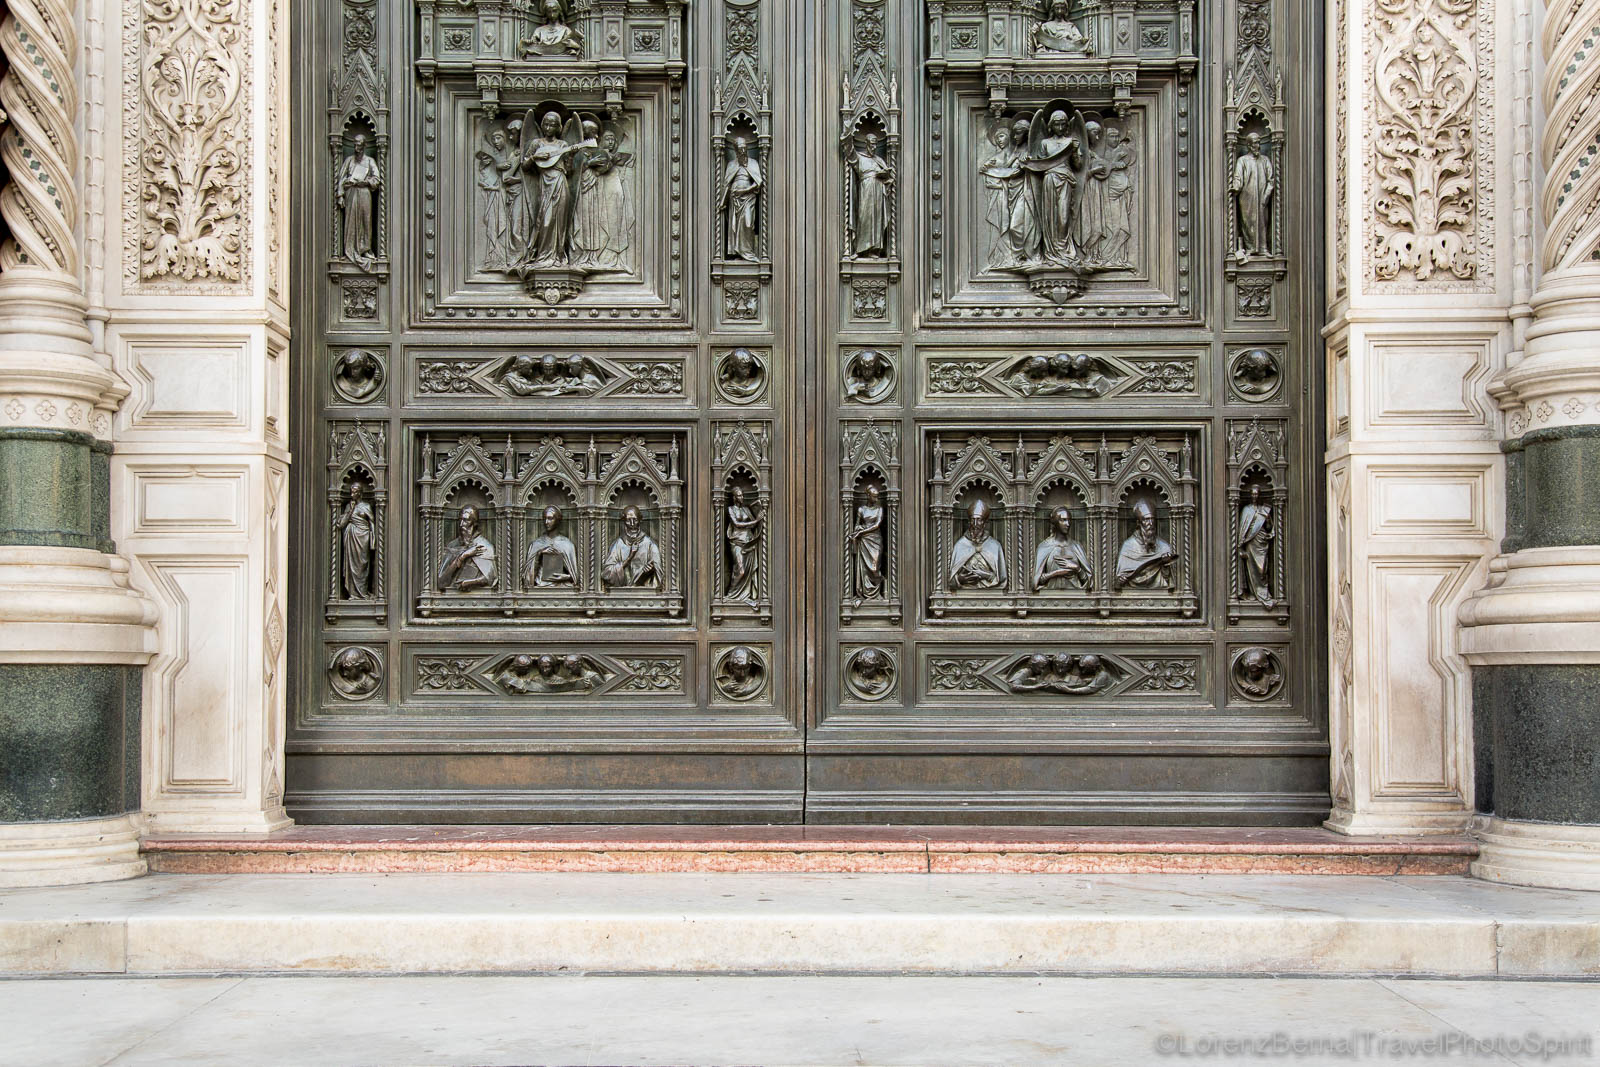 Details of the door of the Santa Maria del Fiore Cathedral, Florence, Tuscany, Italy.